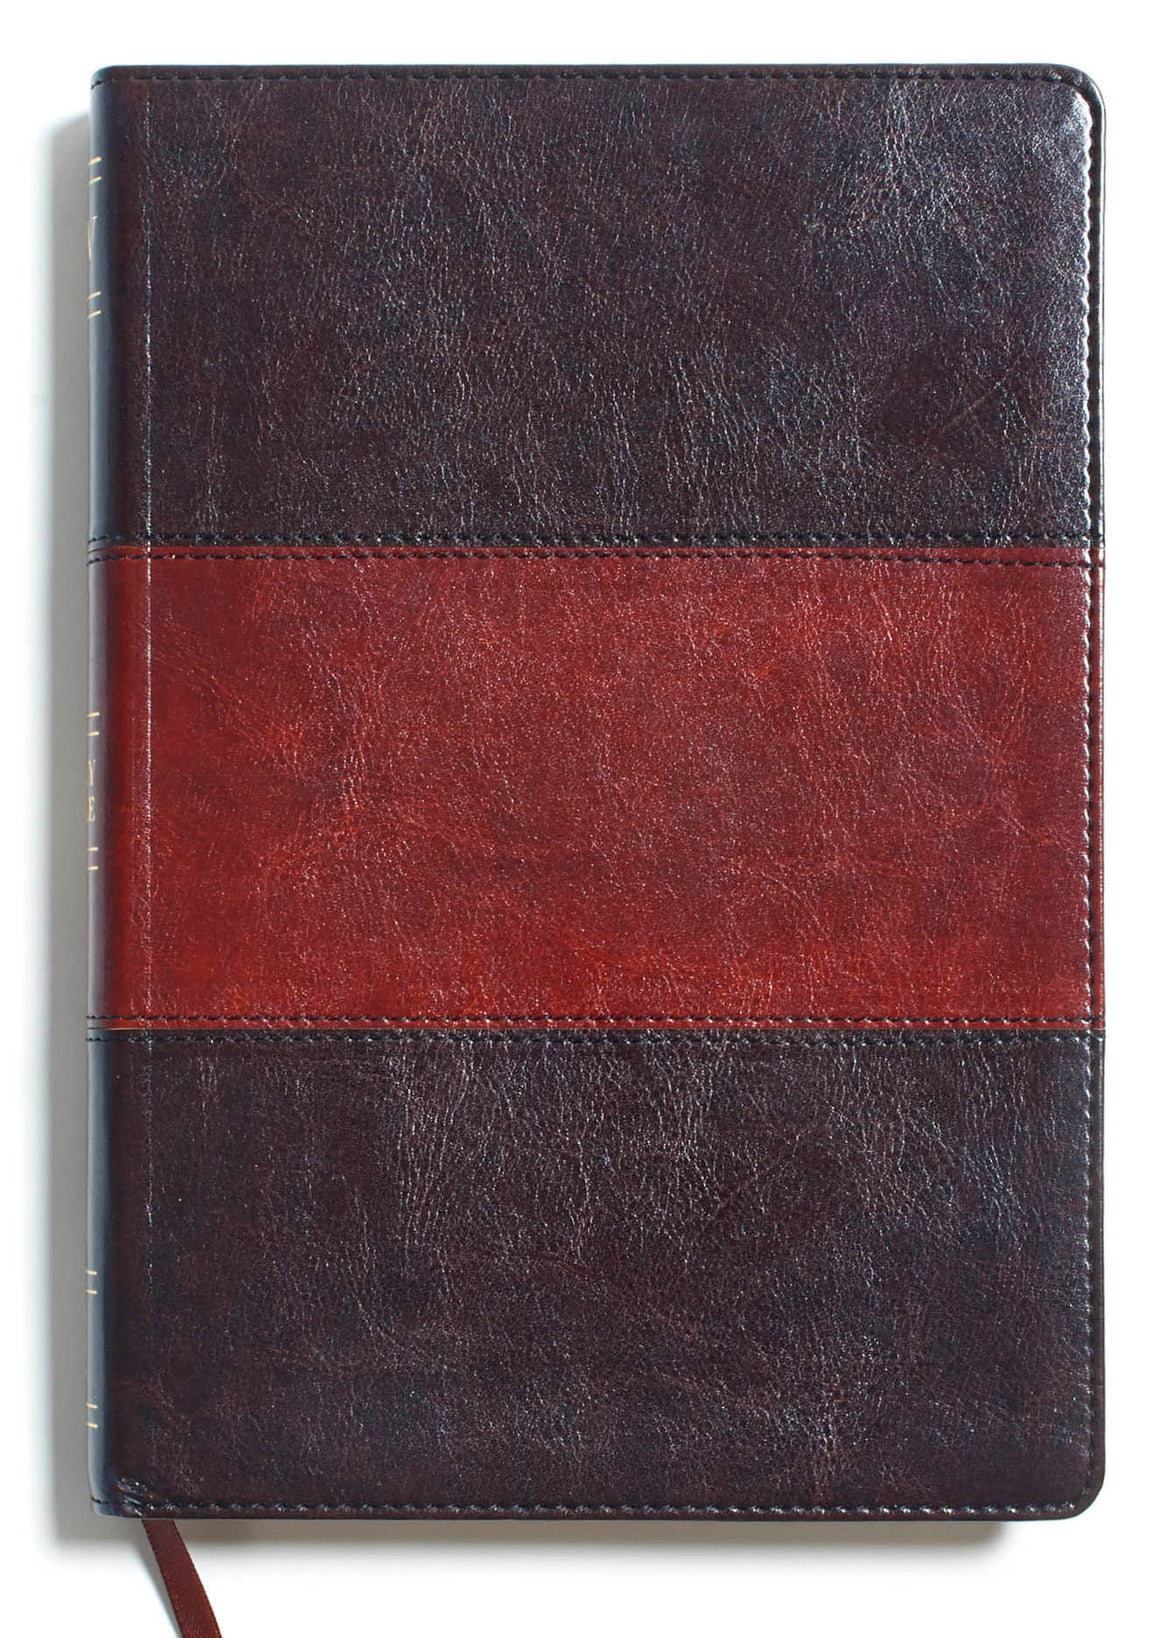 Bible: KJV, Large Print Ultrathin Reference Bible, Saddle Brown